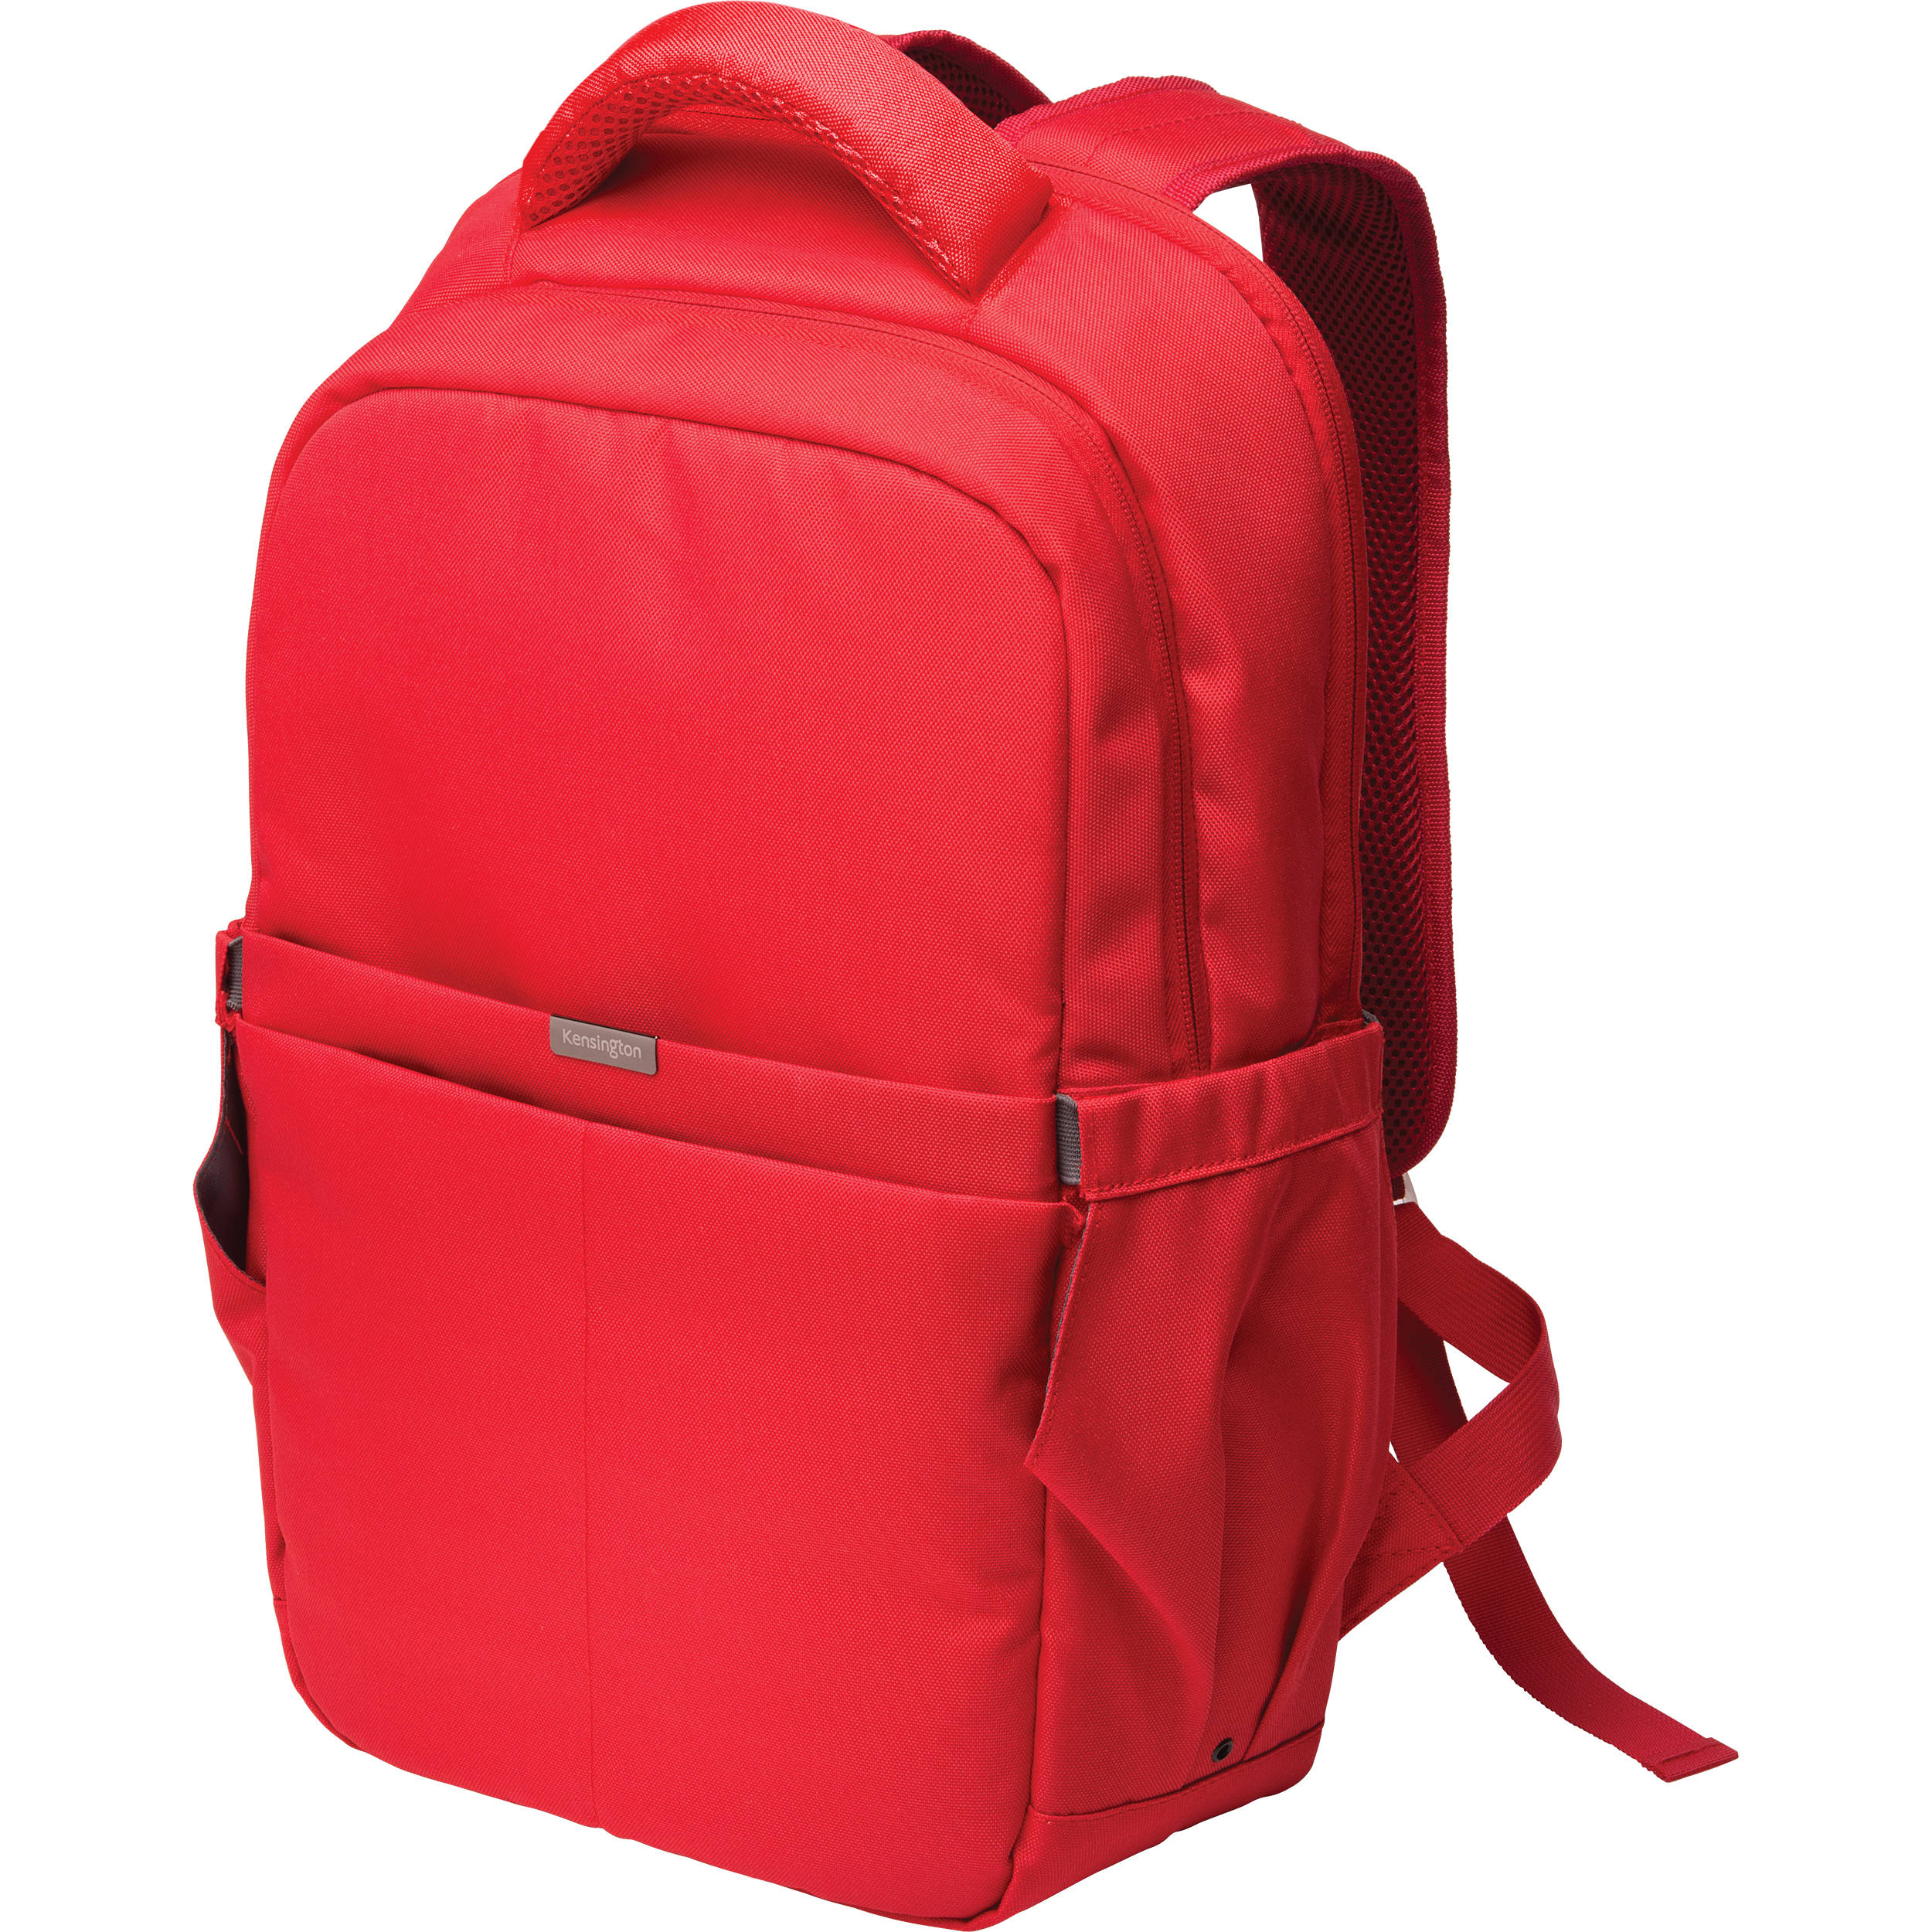 Kensington LS150 Laptop Backpack (Red) K98600WW B&H Photo Video